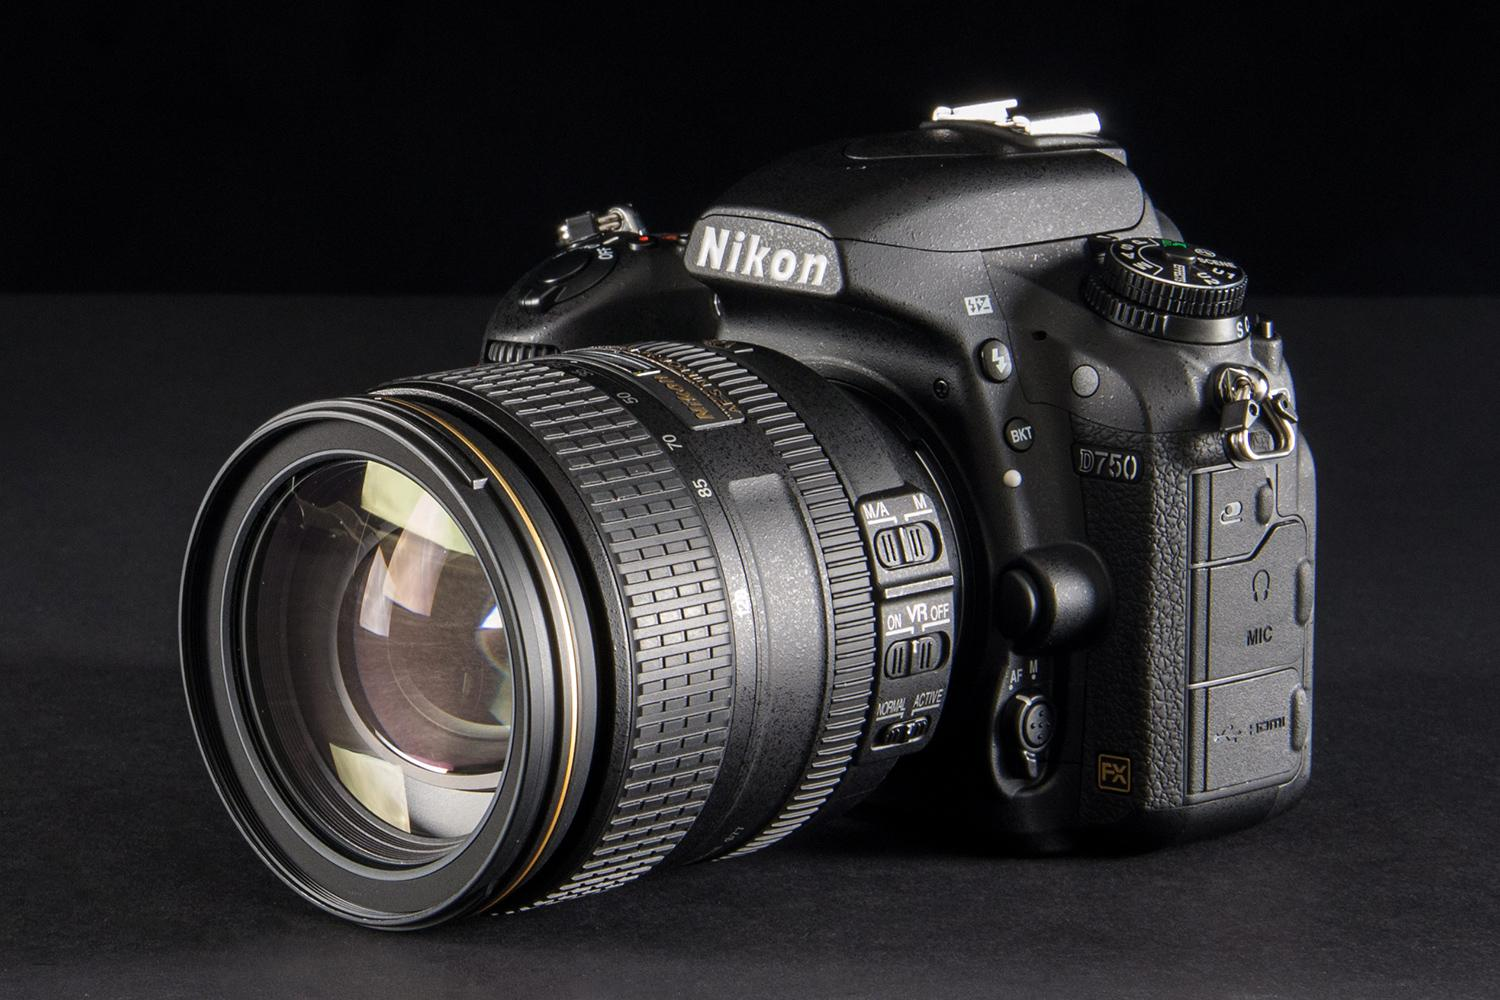 http://s3.amazonaws.com/digitaltrends-uploads-prod/2014/10/Nikon-d750-review-body-angle.jpg